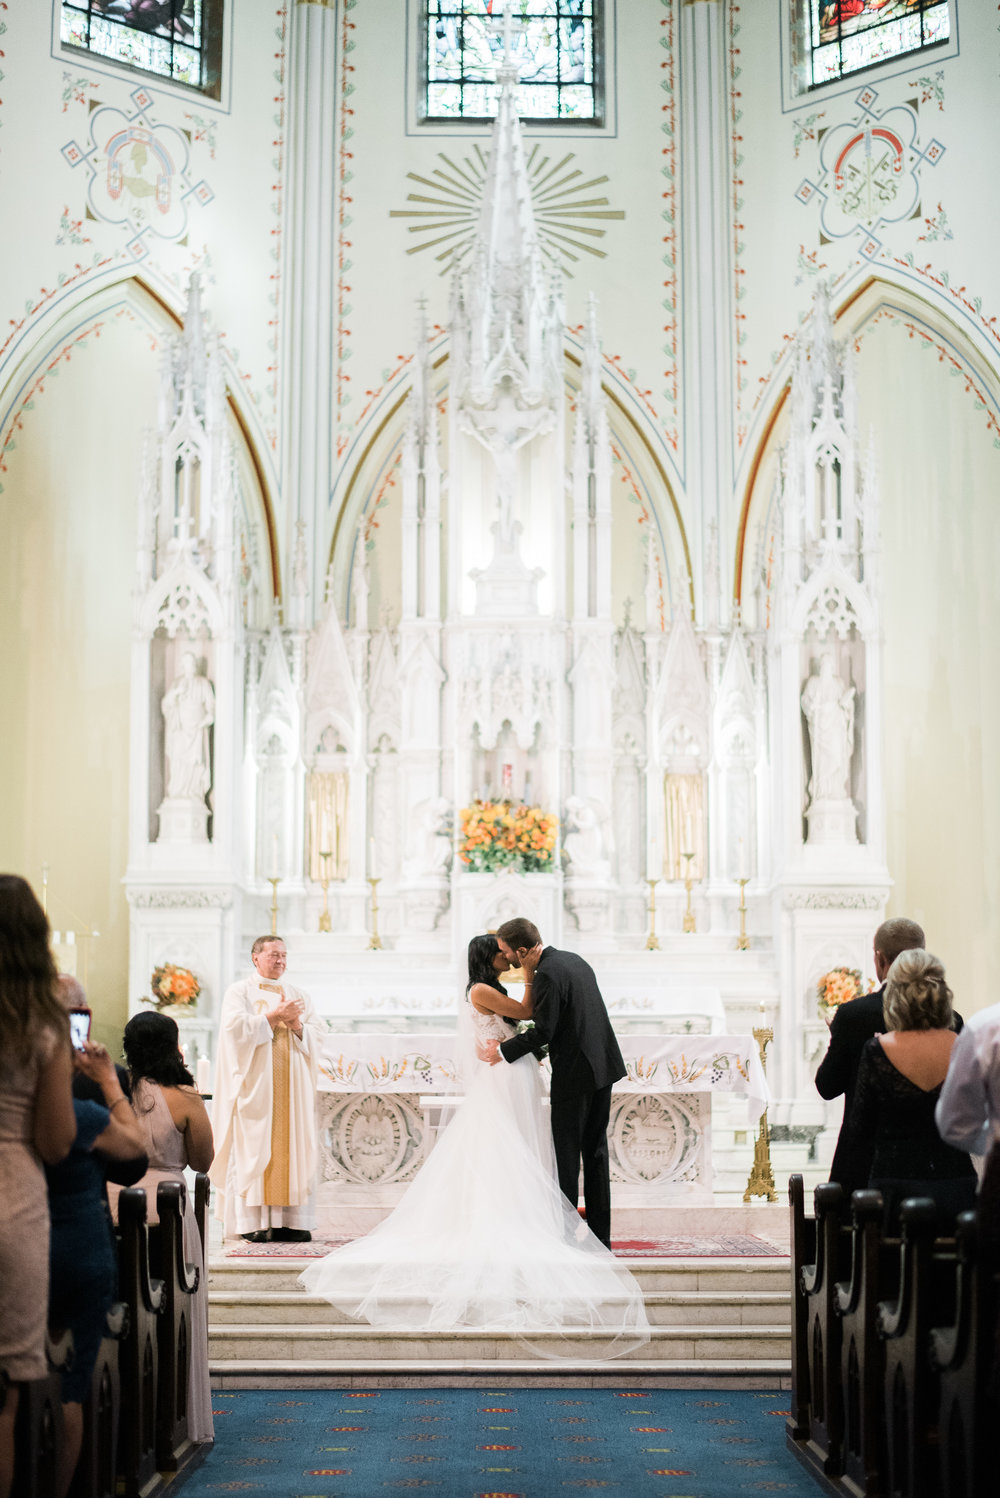 Redemptorist Church, President Hotel Wedding Ceremony and Reception